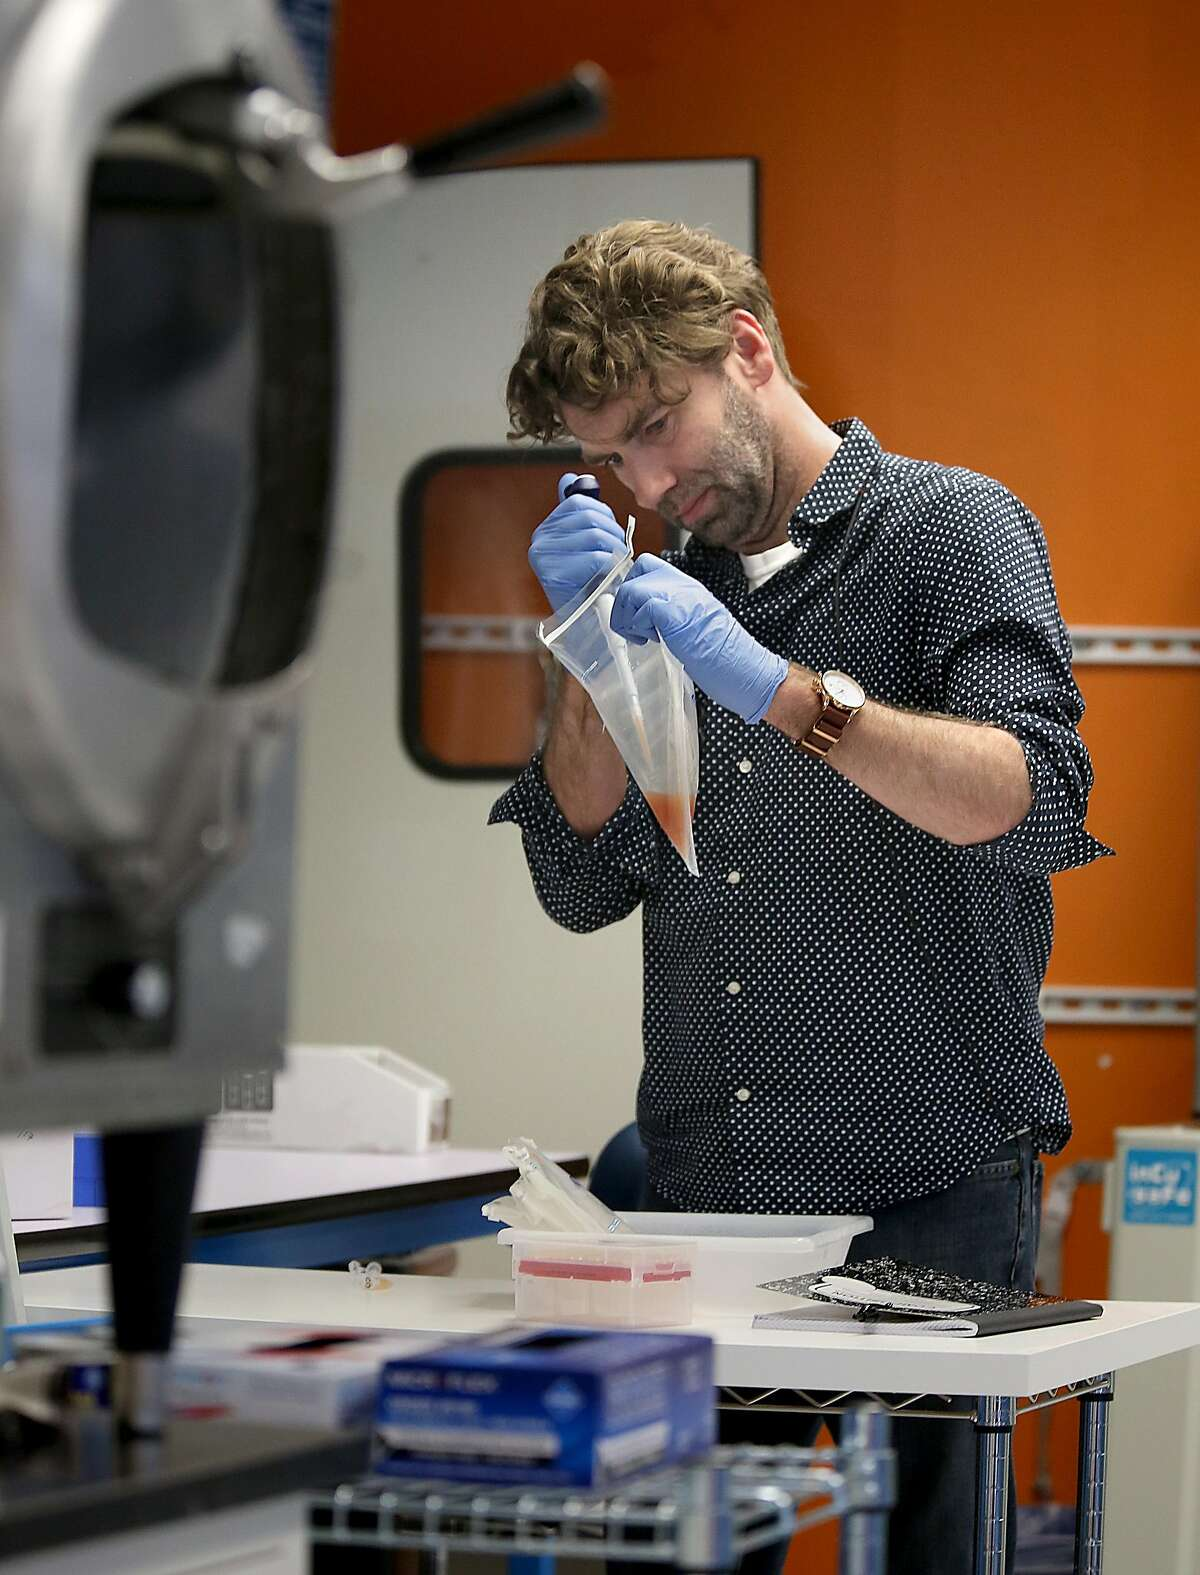 Senior scientist Chris Haney takes a sample of water rinsed from chicken skin to do an analysis at Clear Labs which conducts DNA sequencing and analysis of food samples on Thursday, July 27, 2017, in Menlo Park, Calif.